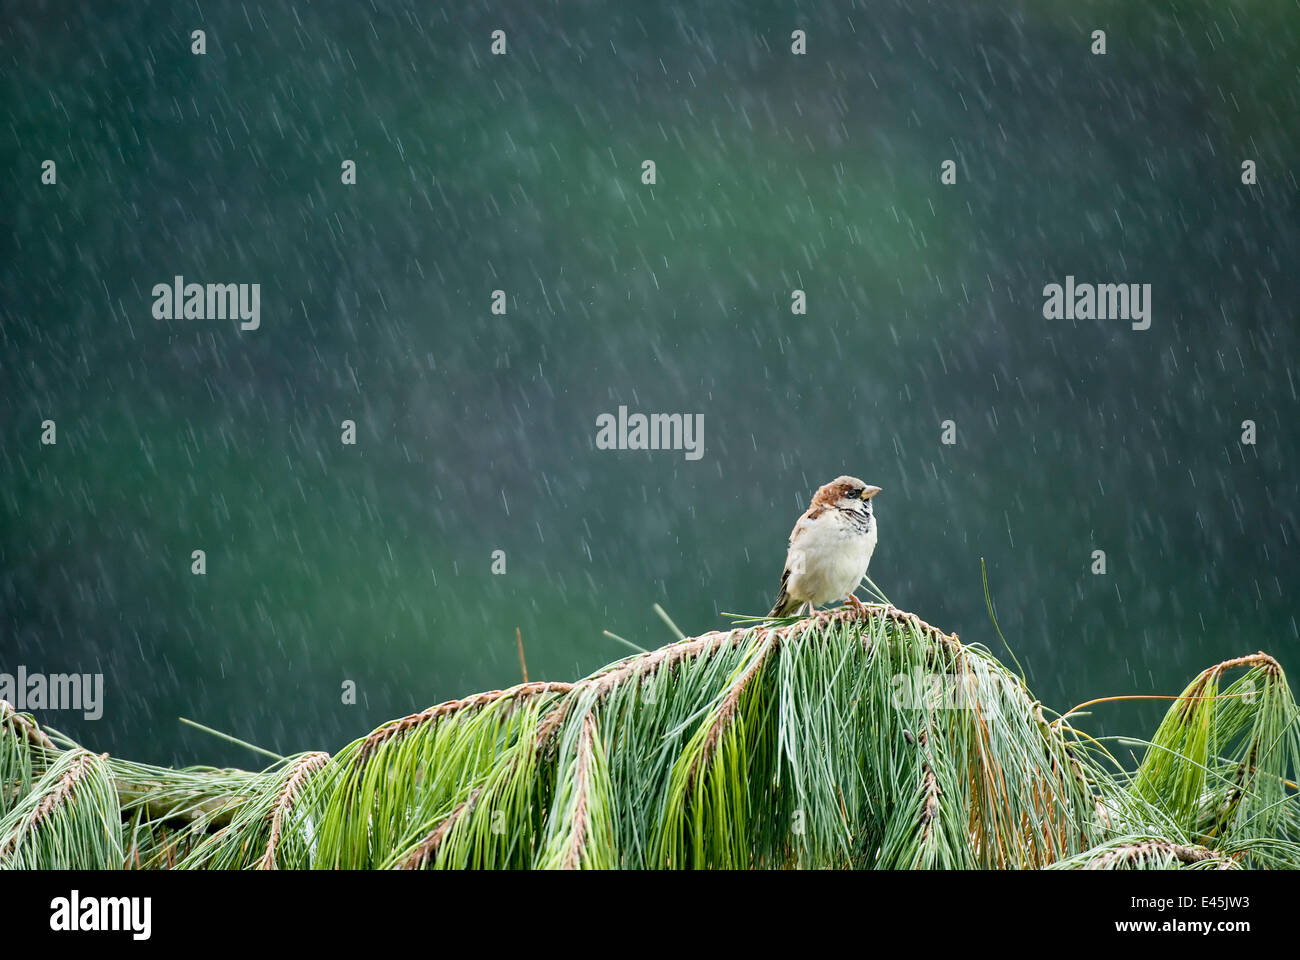 Male House sparrow (Passer domesticus) peched on a fallen Fir tree in heavy rain, Christchurch, New Zealand, March Stock Photo